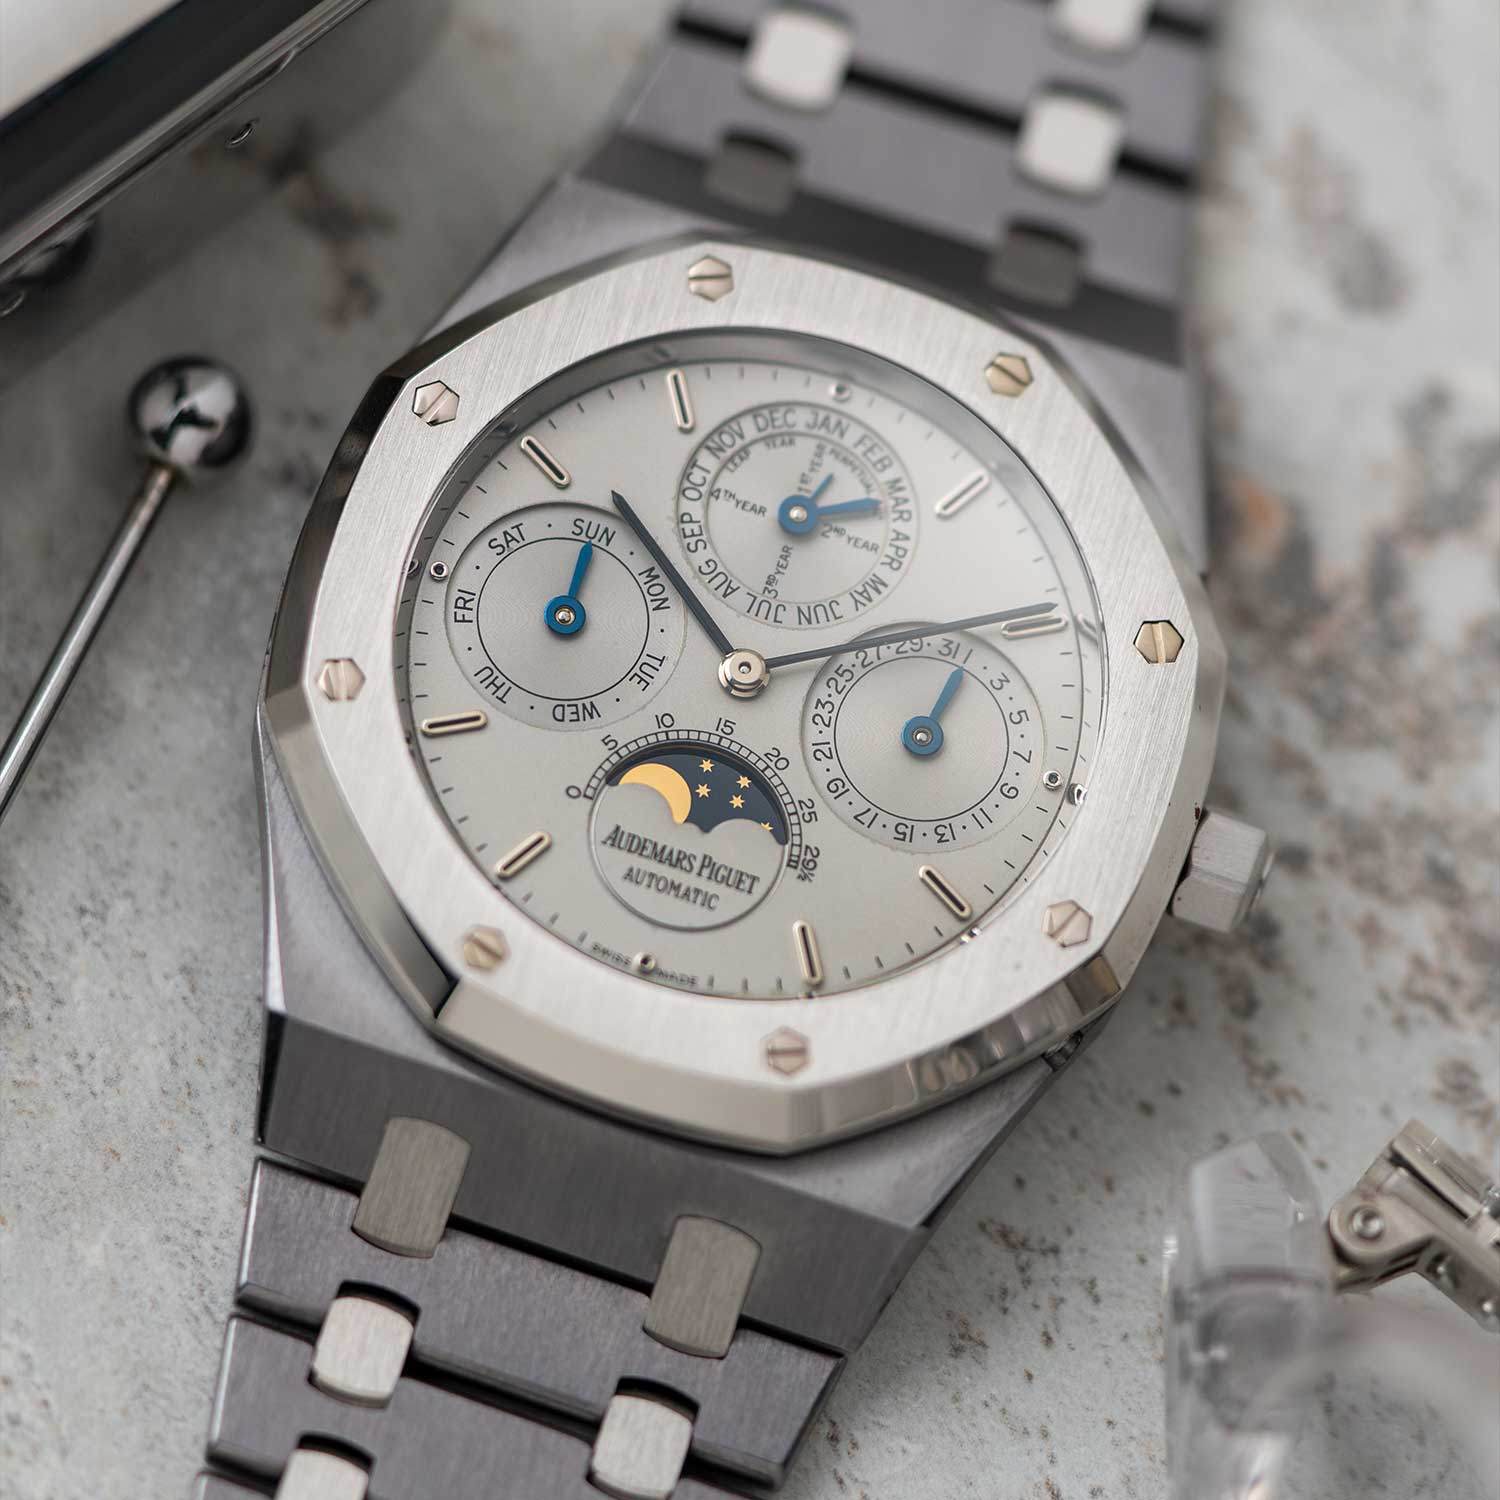 The Royal Oak Perpetual Calendar ref. 25820PT, in platinum plain non-tapiserrie dial; the watch seen here is presently part of the Pygmalion Gallery's private collection (Image: Photo and watch, property of Pygmalion Gallery)